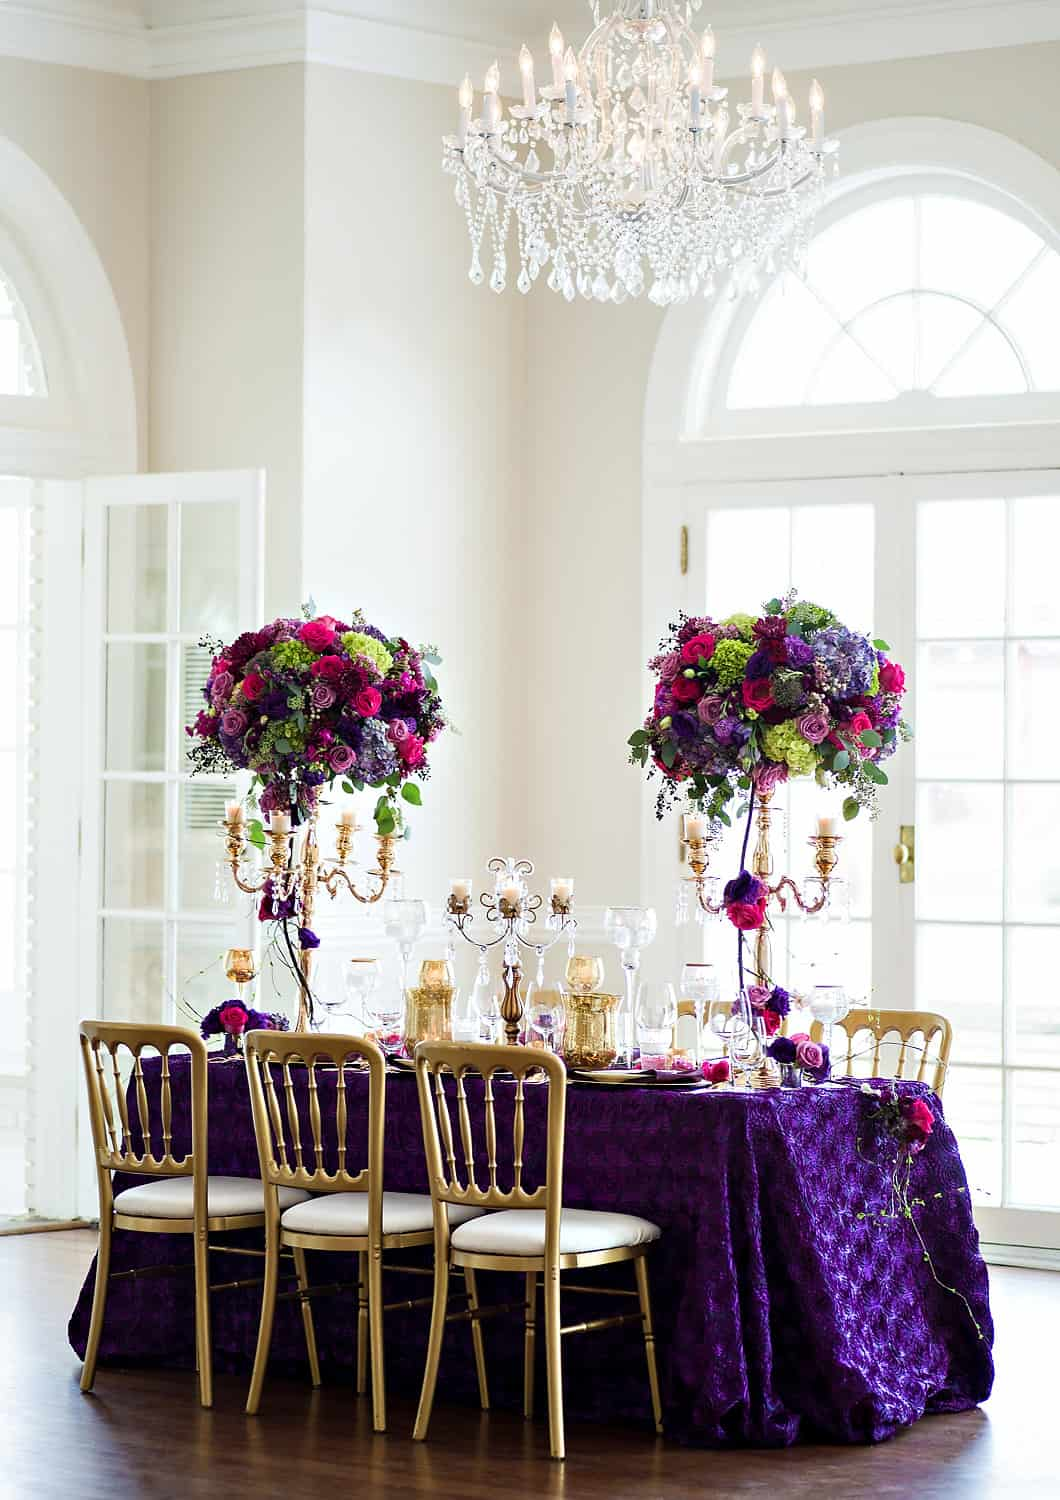 Separk Mansion wedding u2013 purple gold table setting & Separk Mansion wedding - purple gold table setting | Charlotte ...